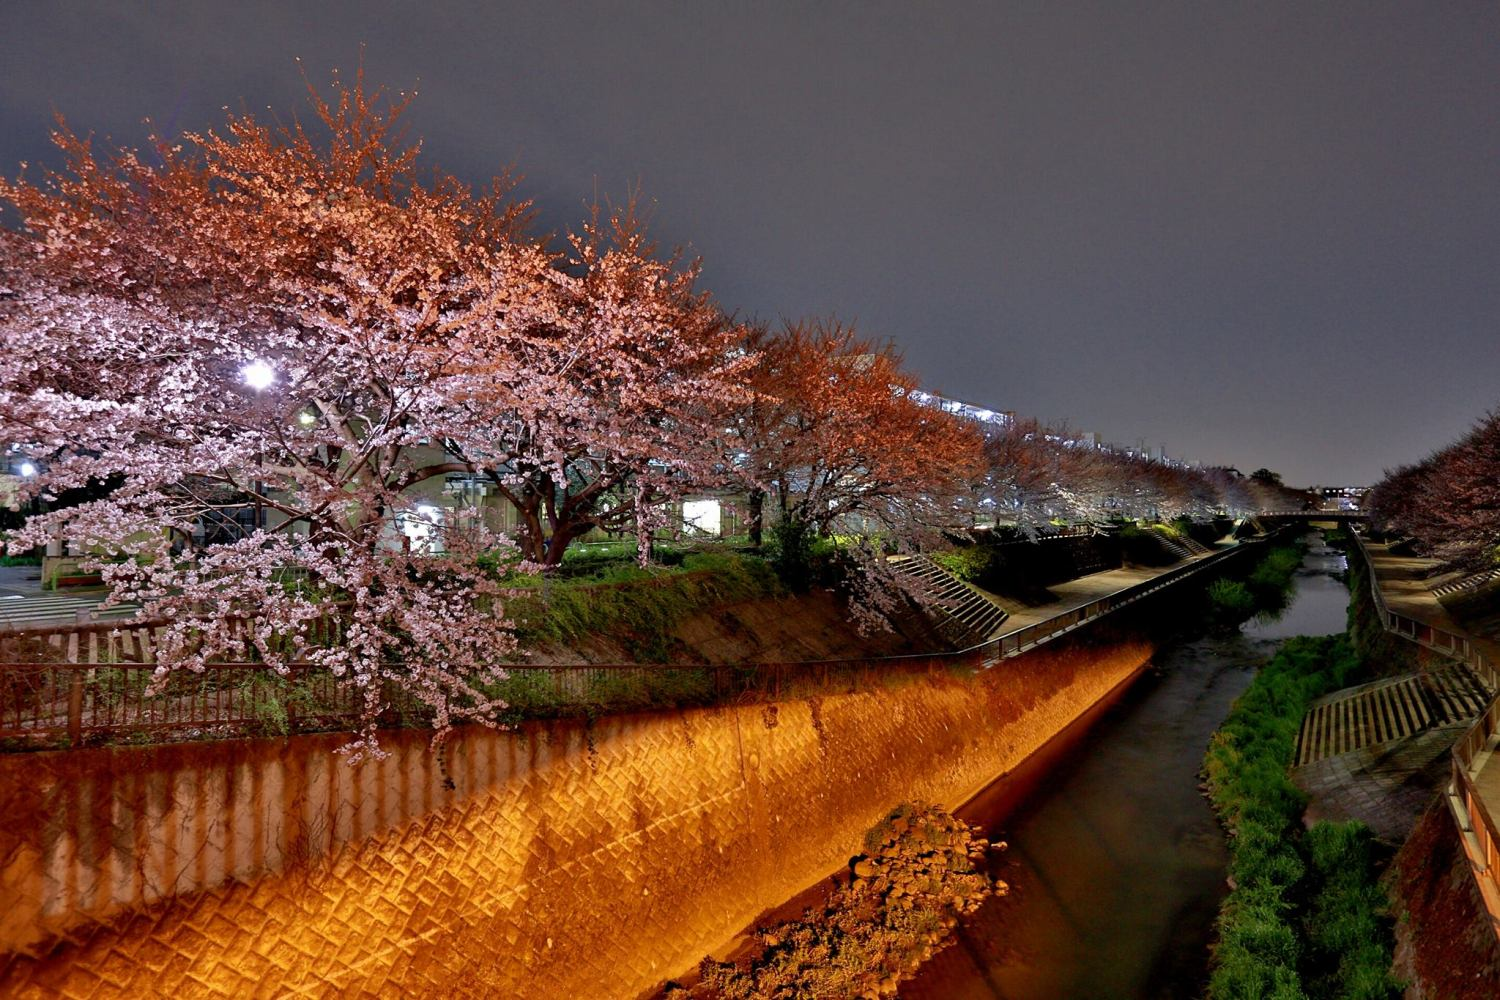 Going to see cherry blossoms at night!